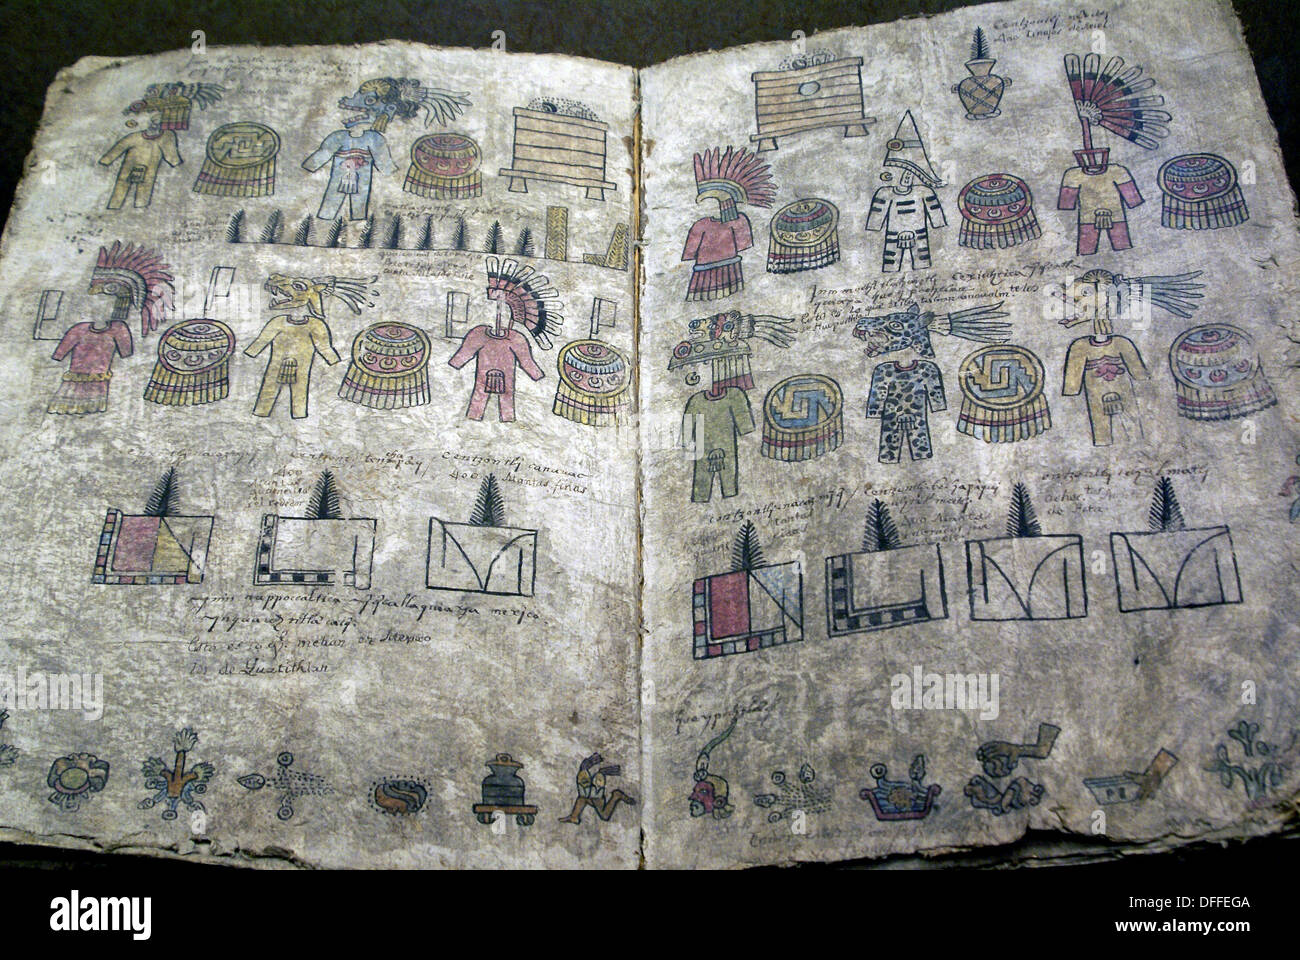 Codex offered in a temple preserved in the National Museum of Anthropology, Mexico - Stock Image